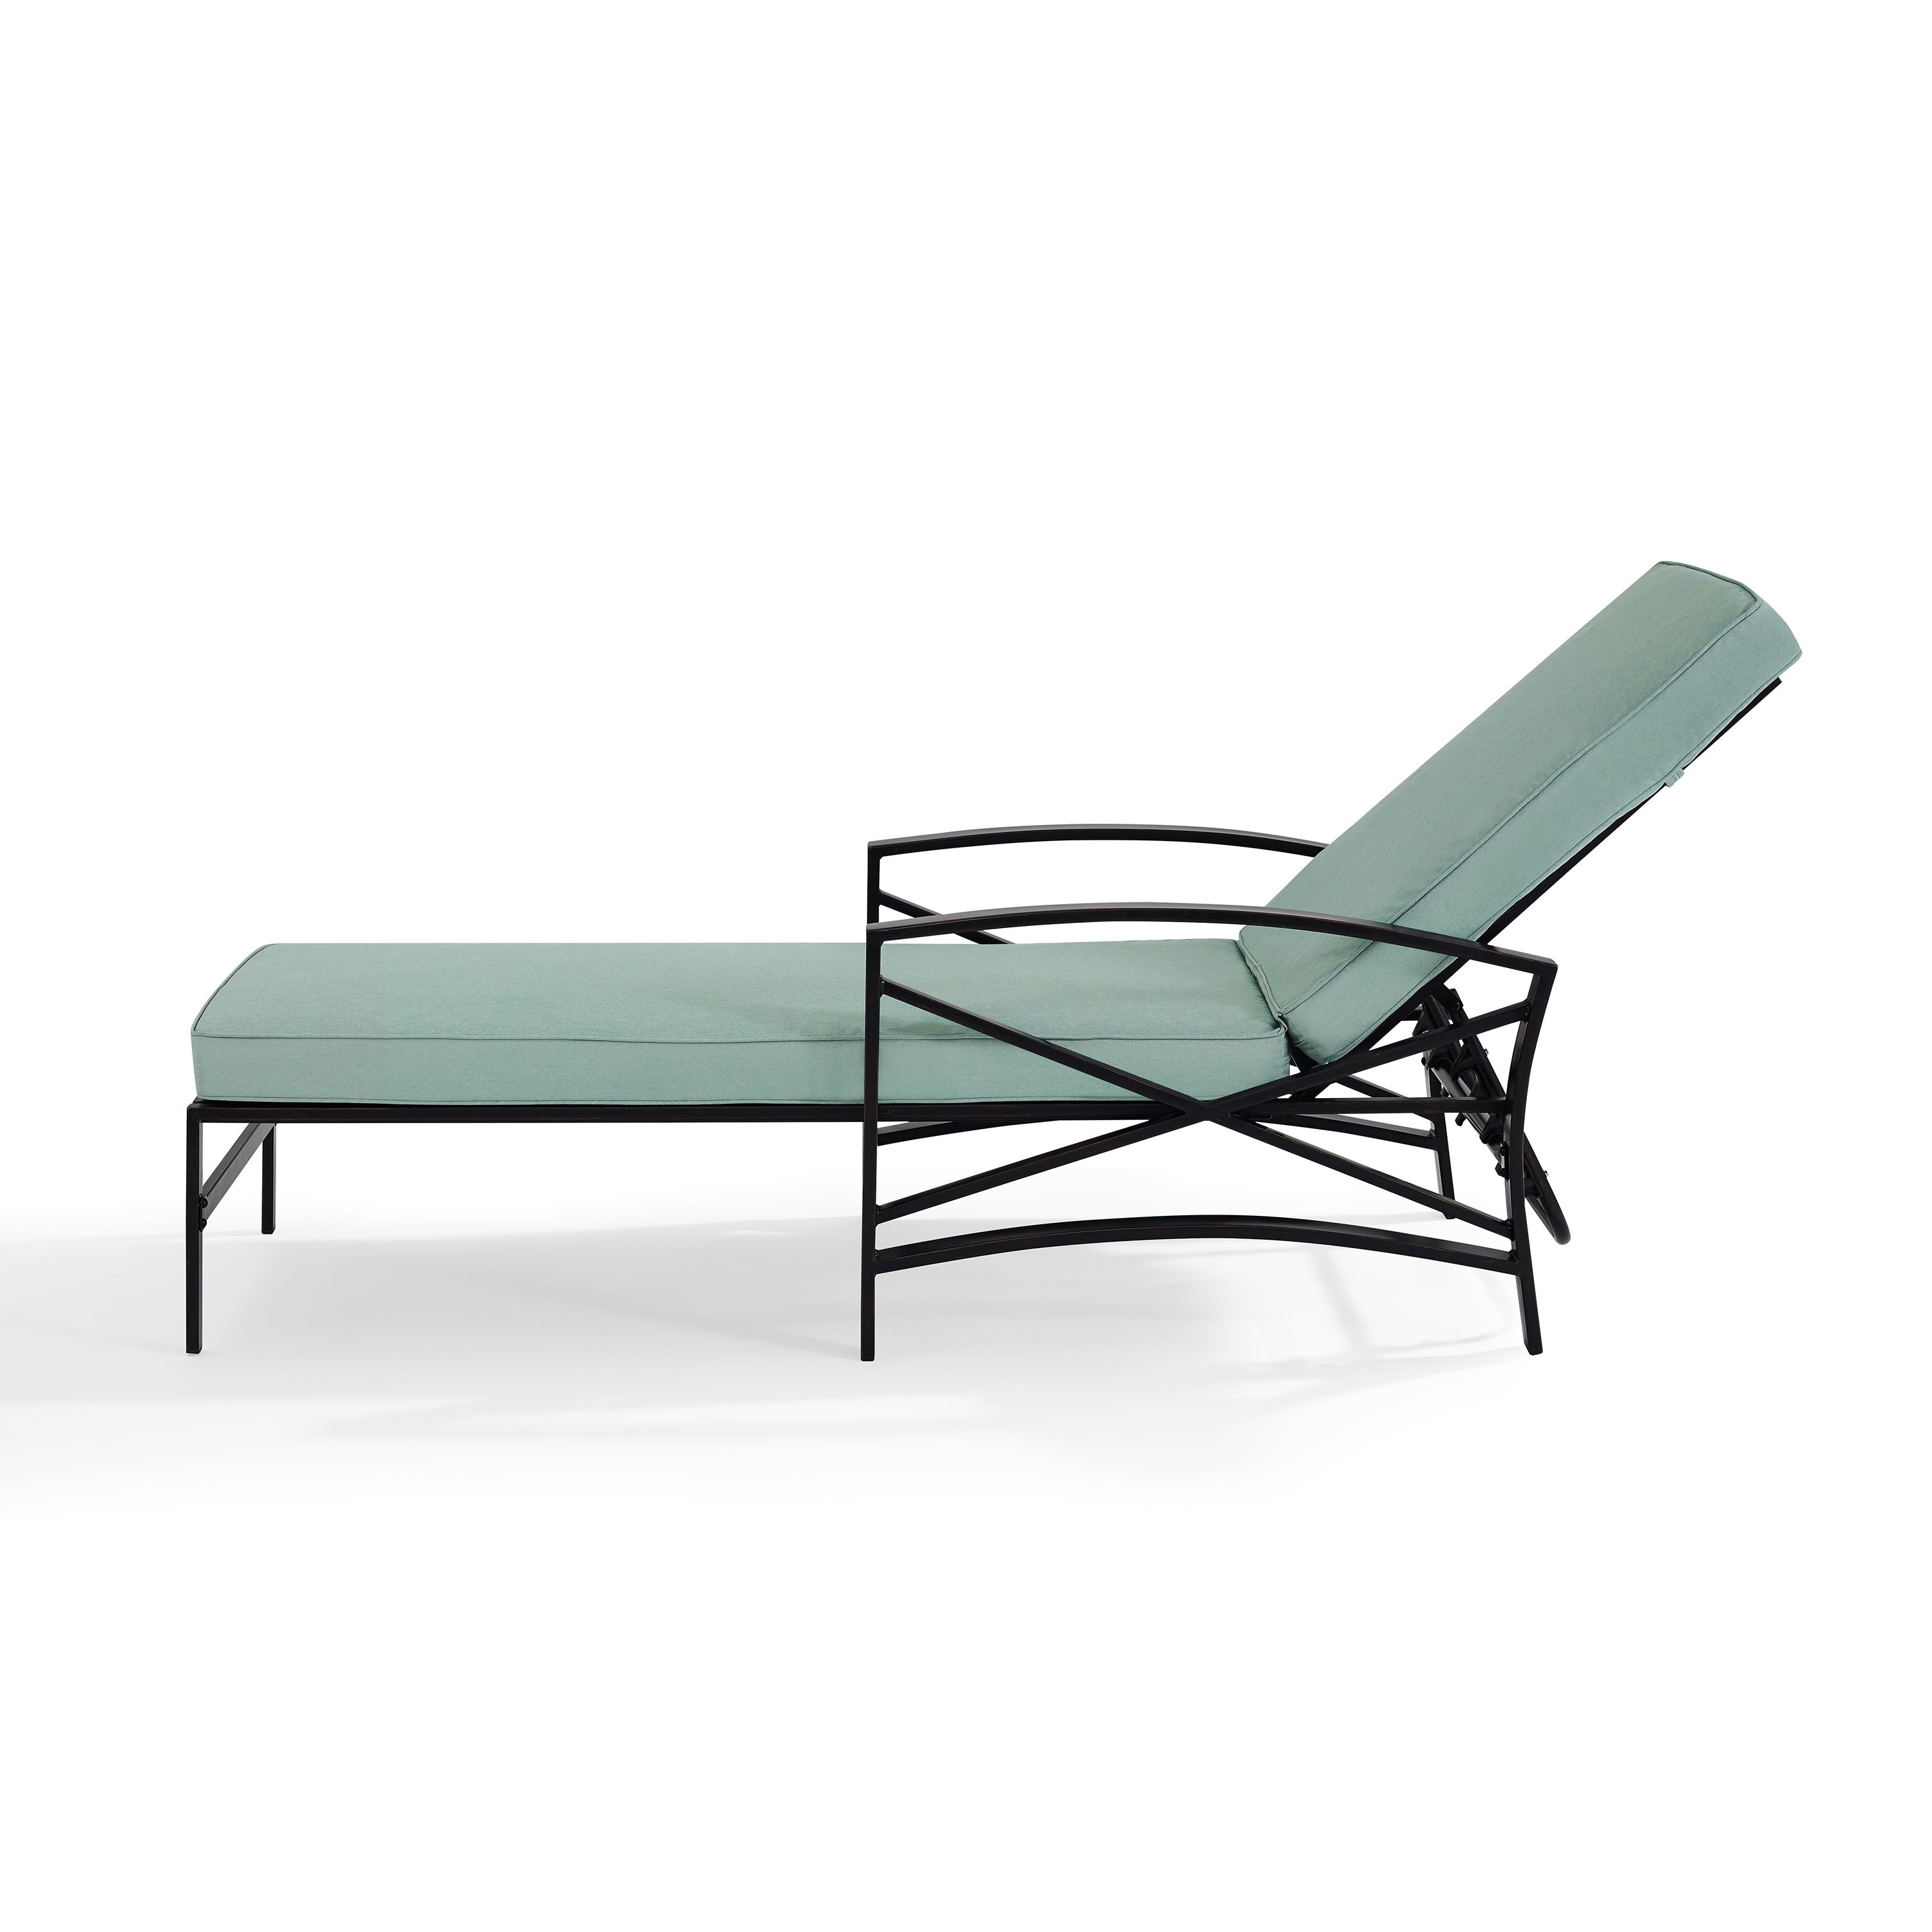 Well Known Havenside Home Davis Chaise Lounge Chair In Bronze With Mist Cushions Within Chaise Lounge Chairs In Bronze With Mist Cushions (Gallery 4 of 25)